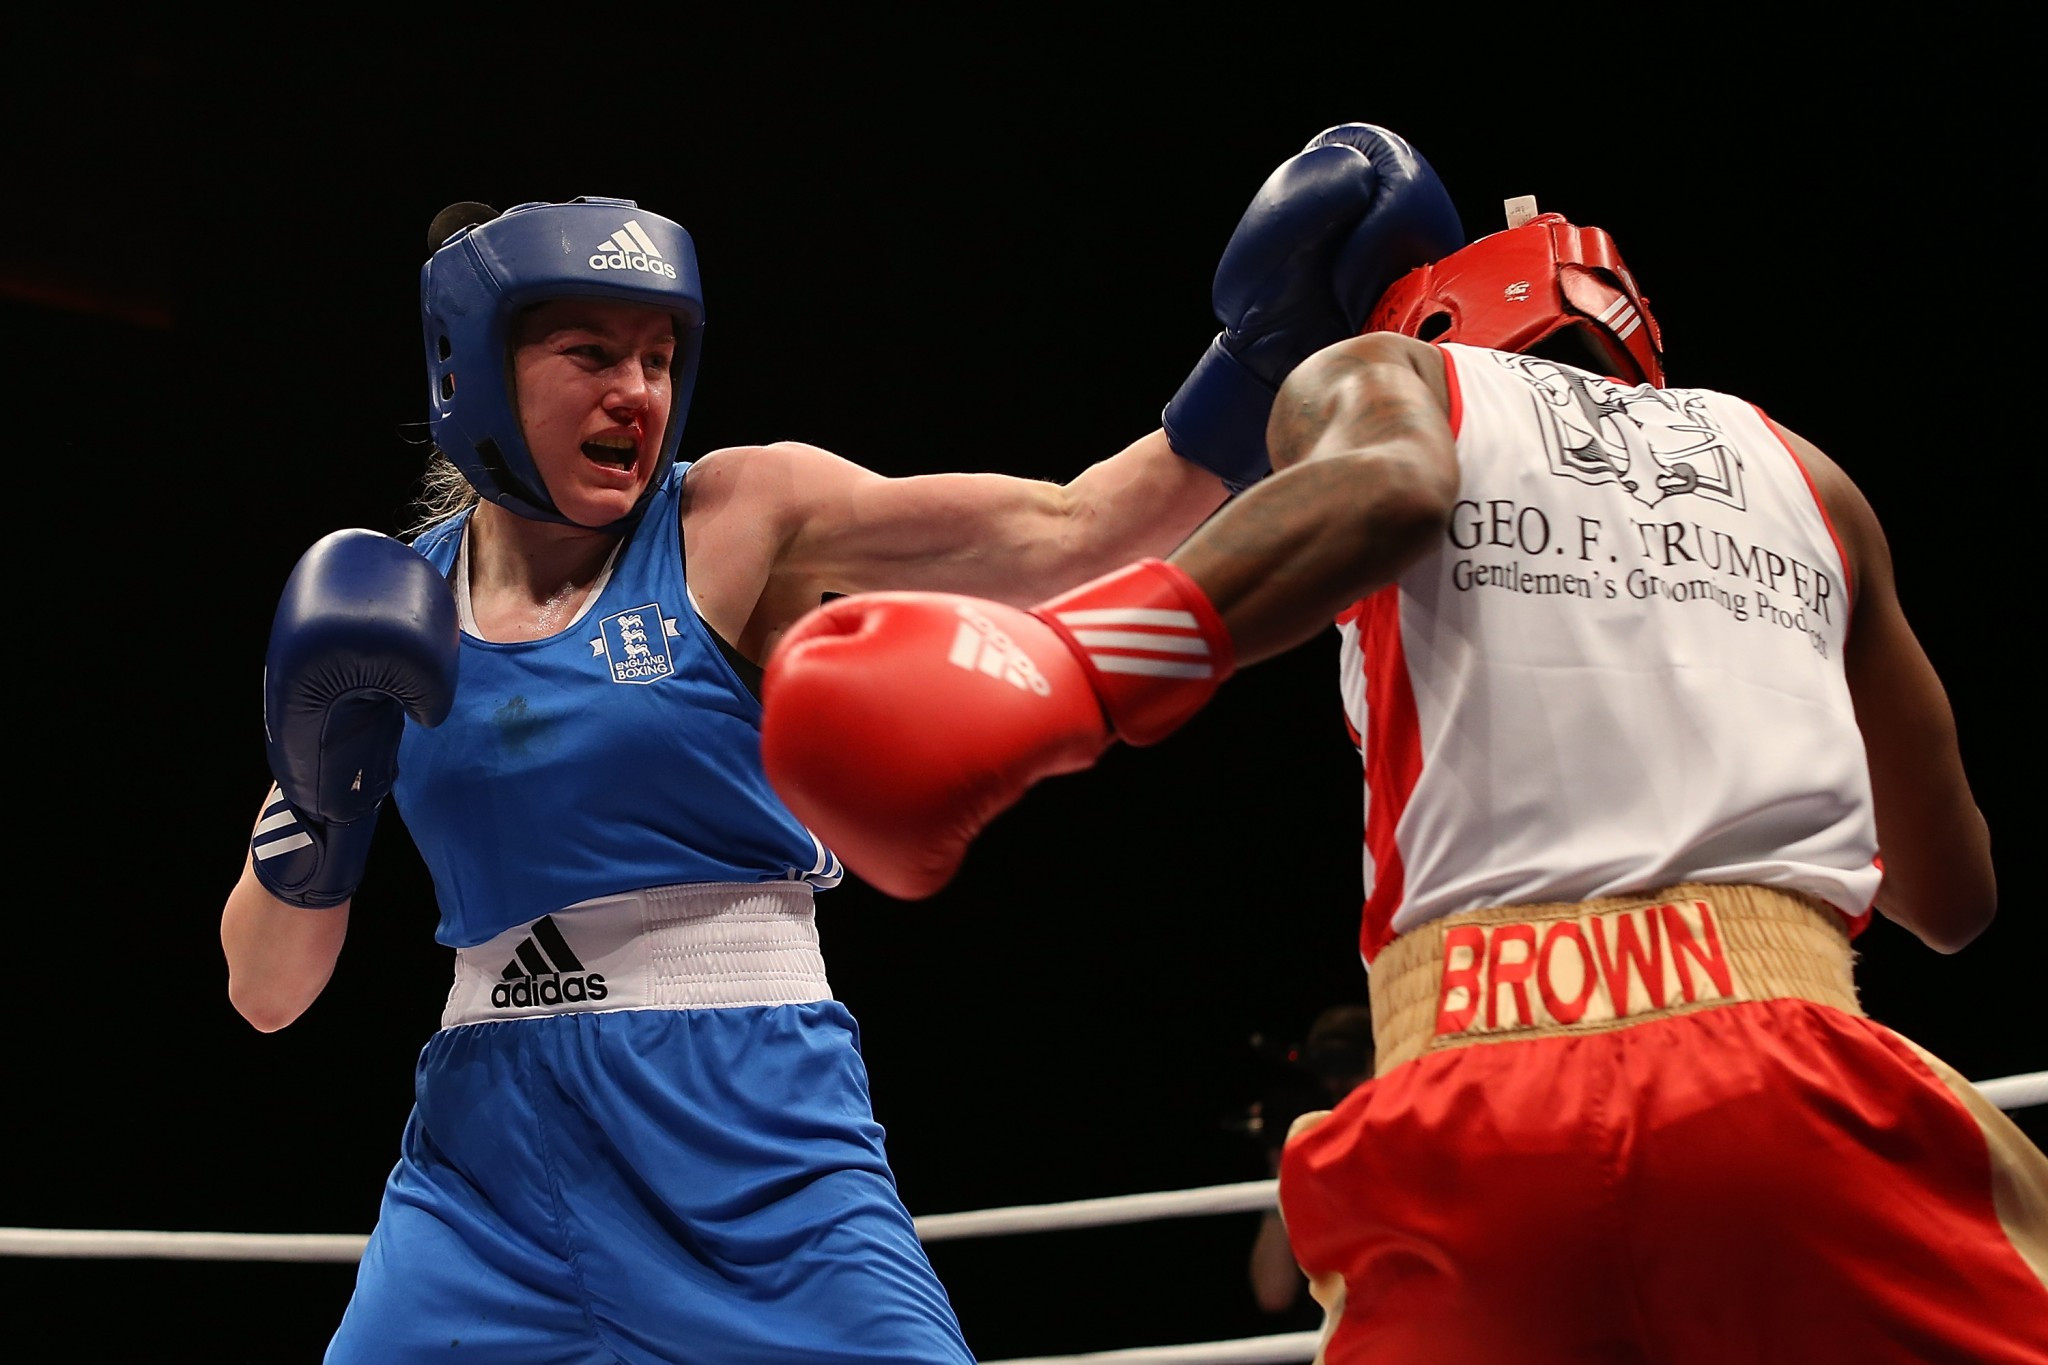 Paige Murney suffered defeat in her 64kg semi-final ©Getty Images